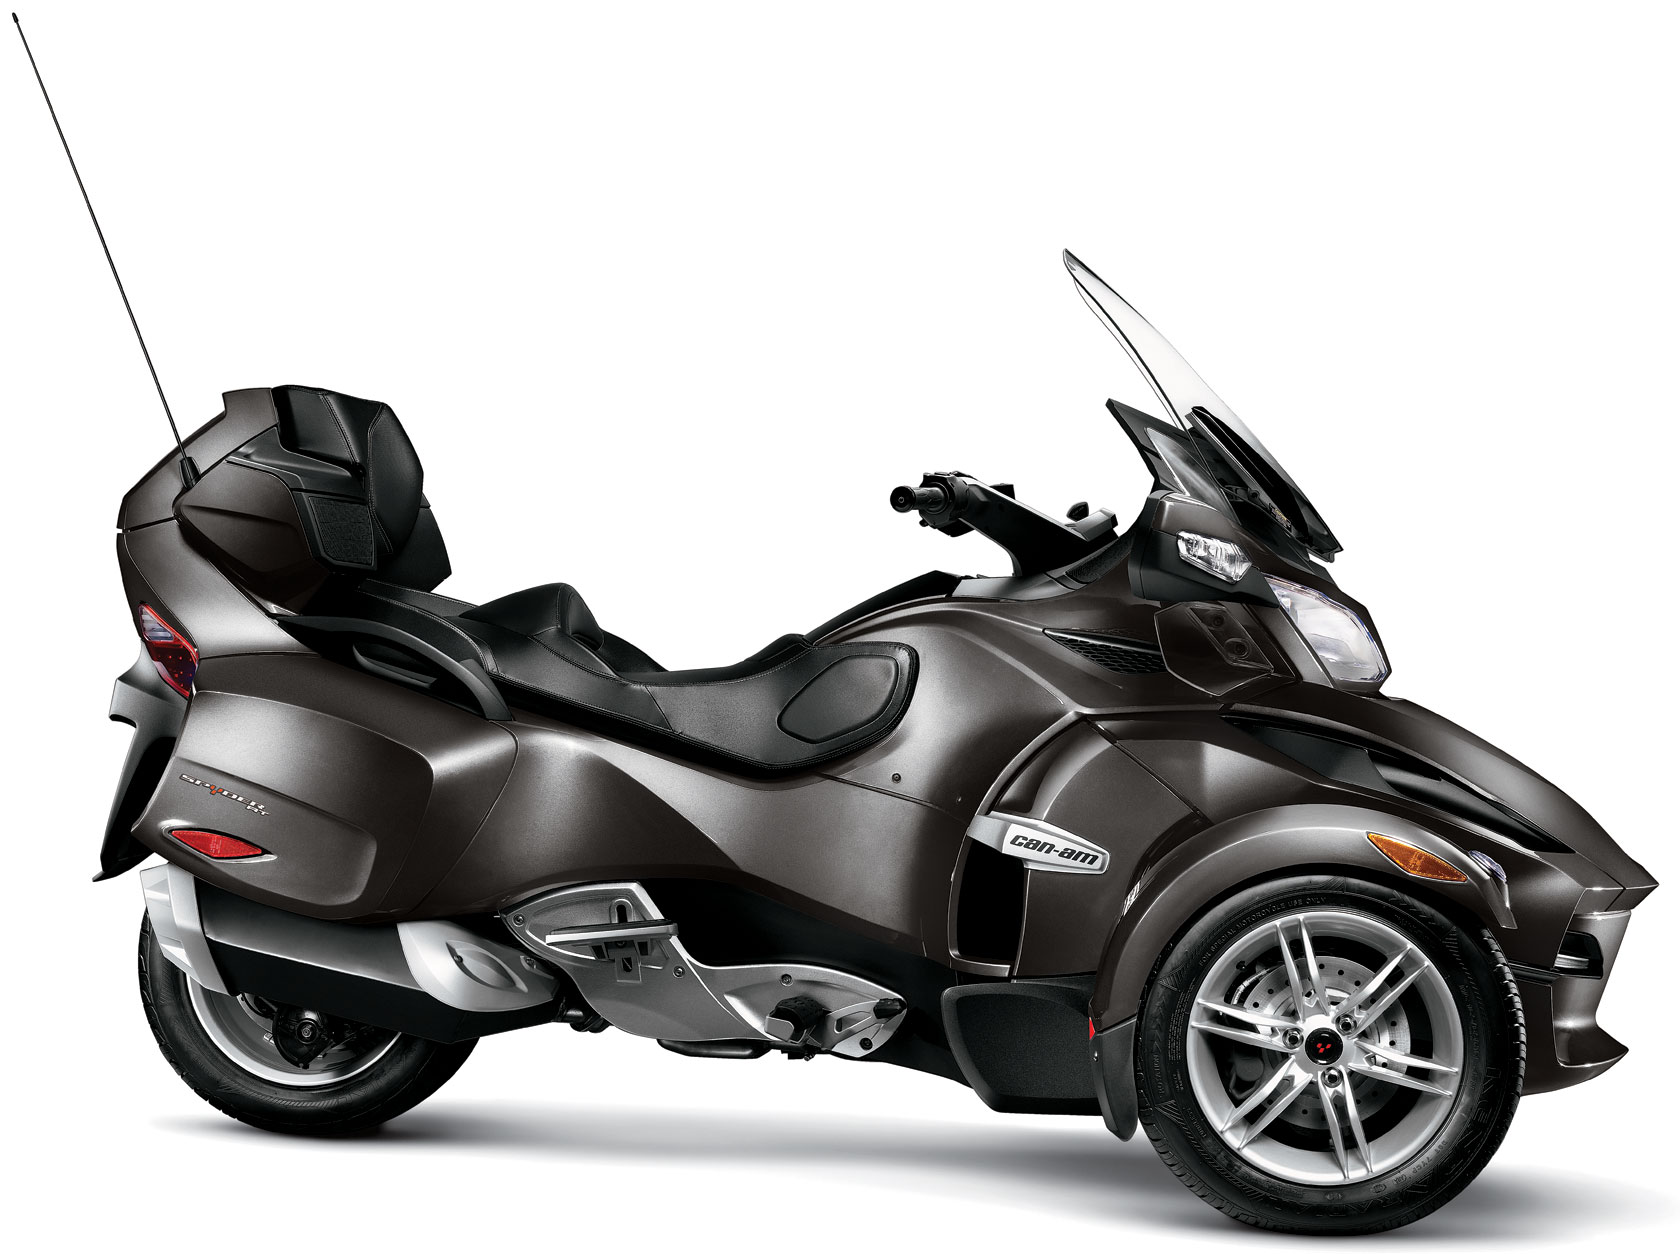 CAN-AM/ BRP Spyder RT Audio and Convenience specs - 2009